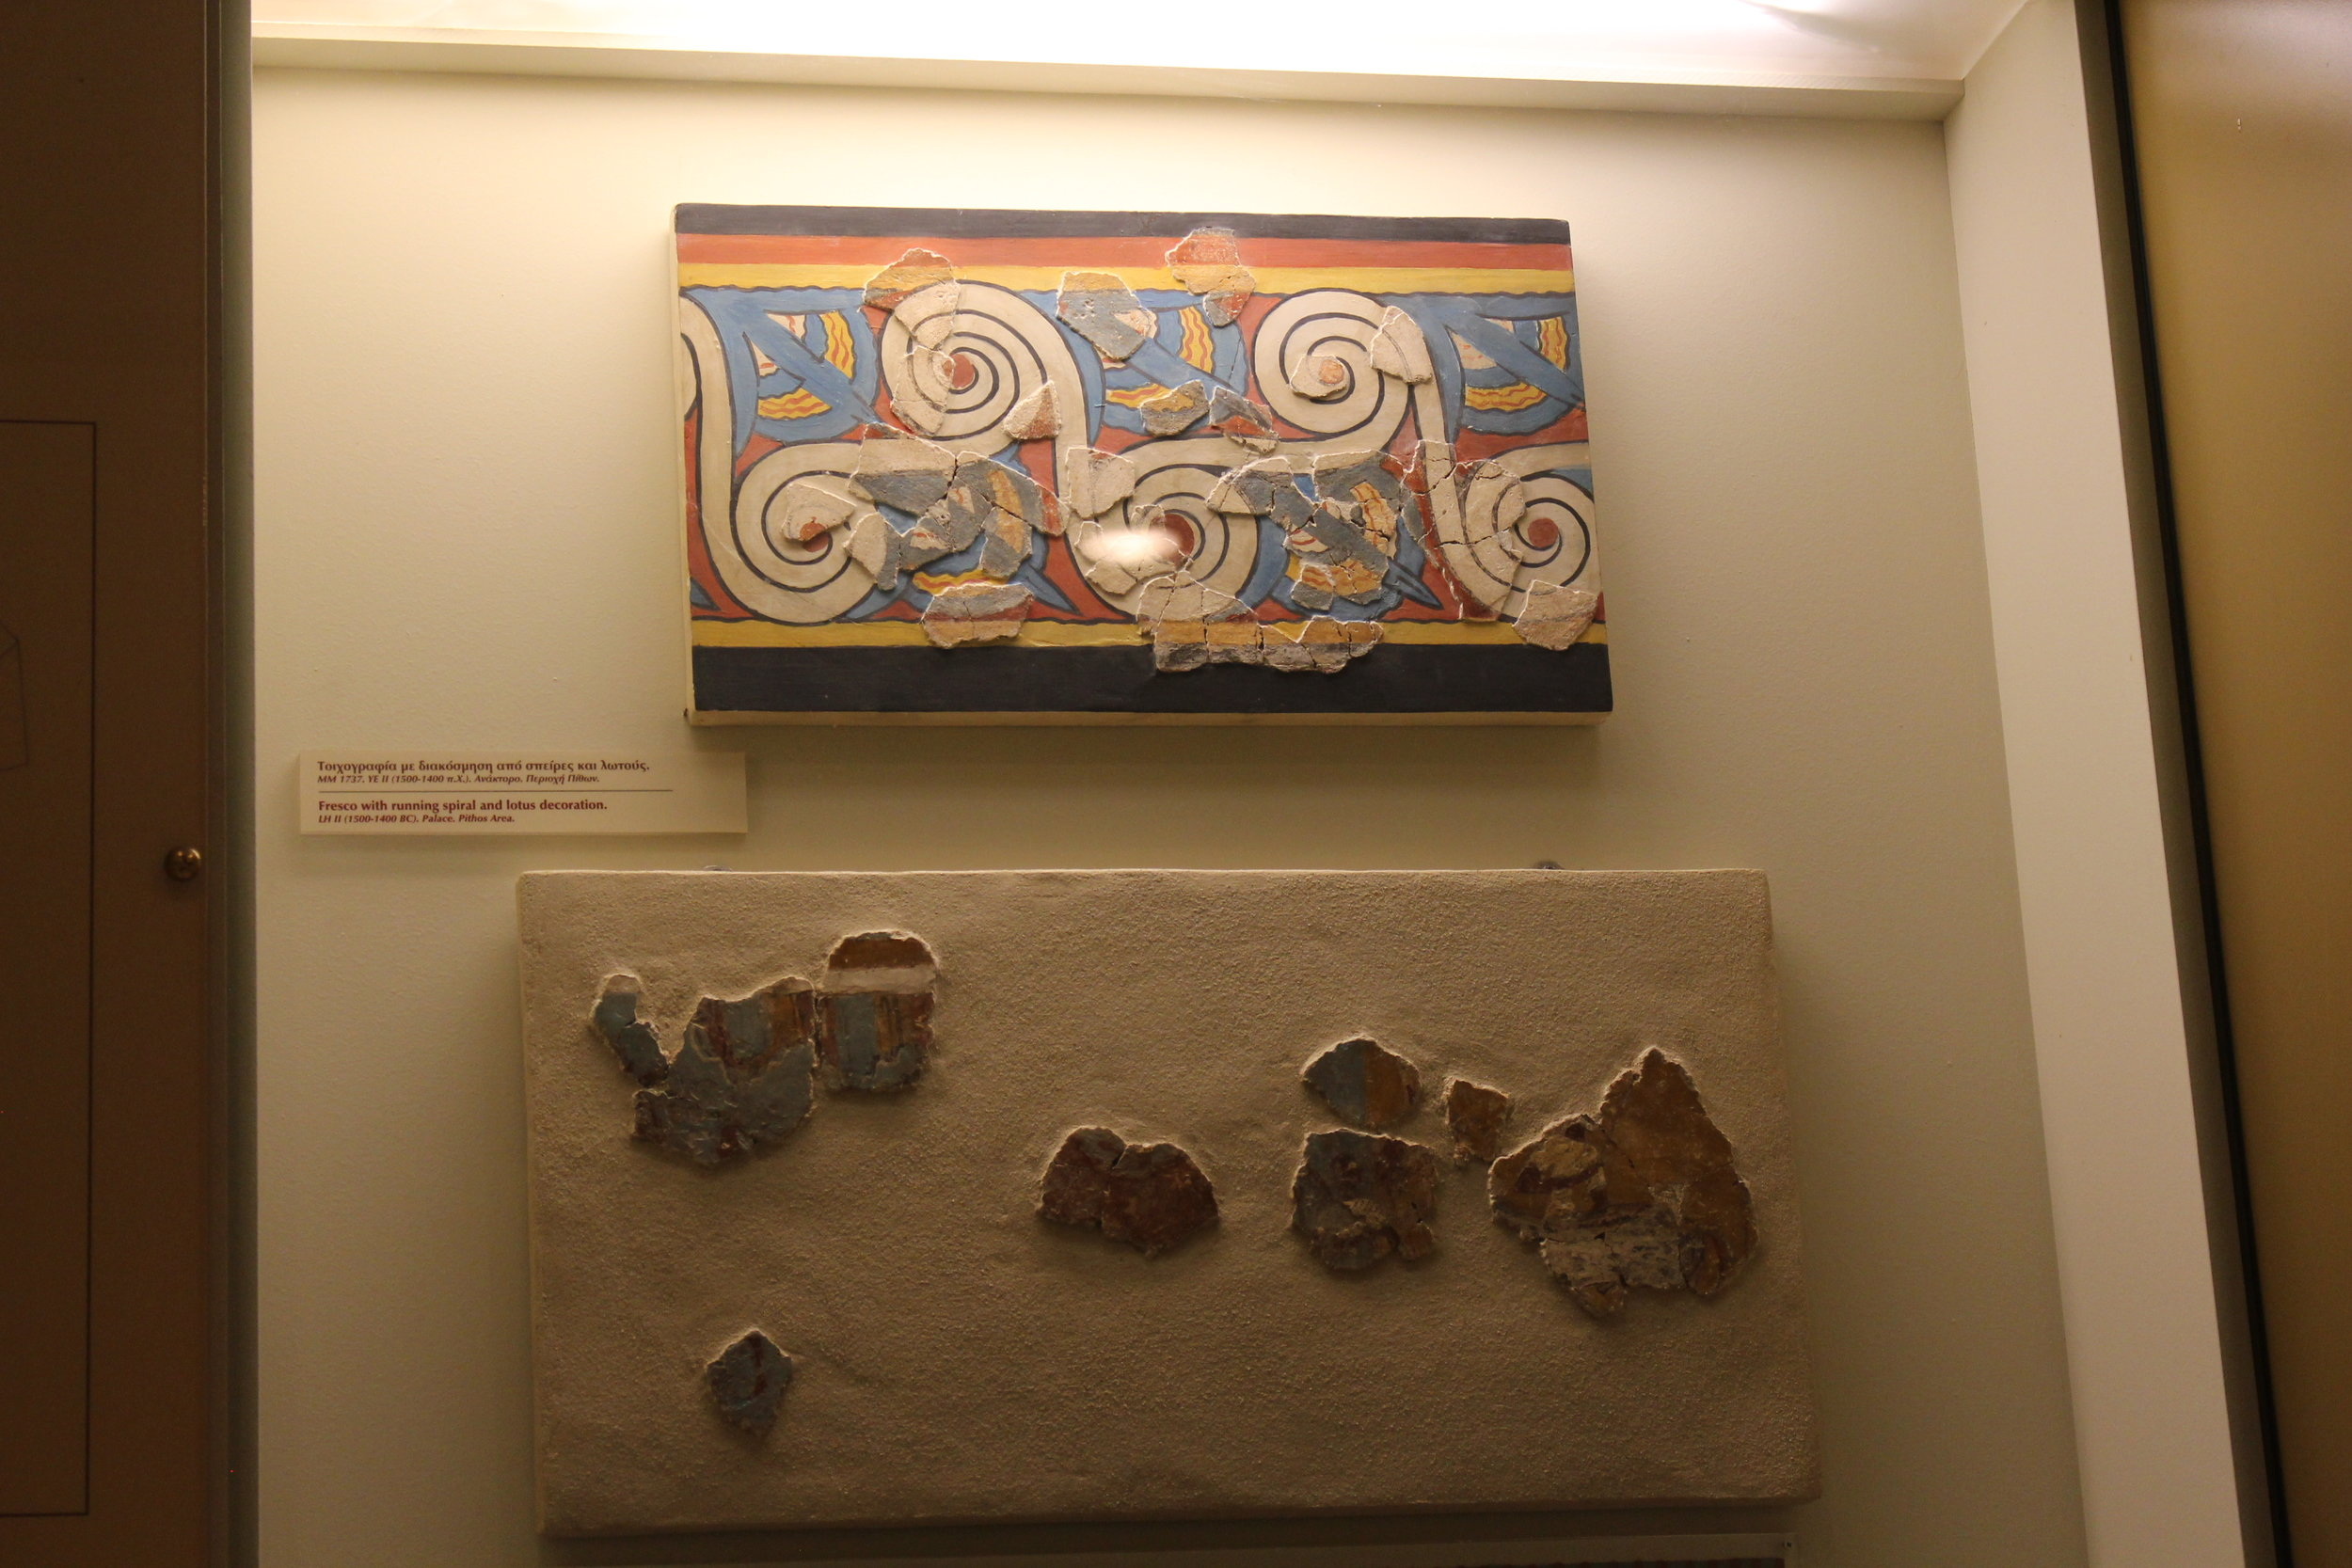 Mykenaen decoration - There were many sea themes waves here. Octopus jewelry was my favorite artifact there.